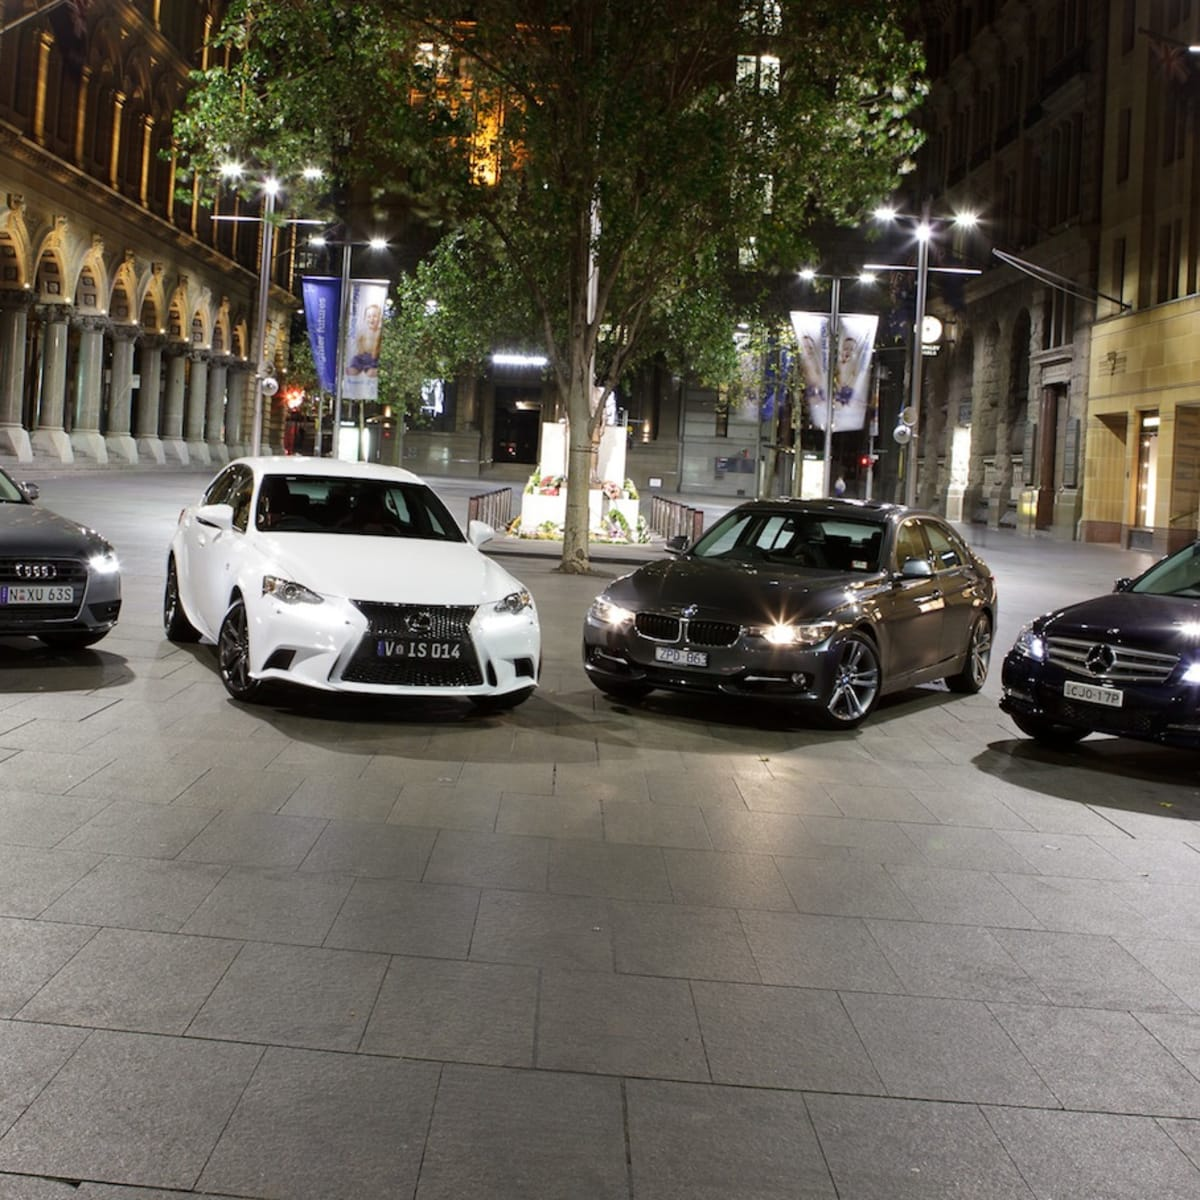 Compact luxury comparison: Lexus IS v BMW 3 Series v Audi A4